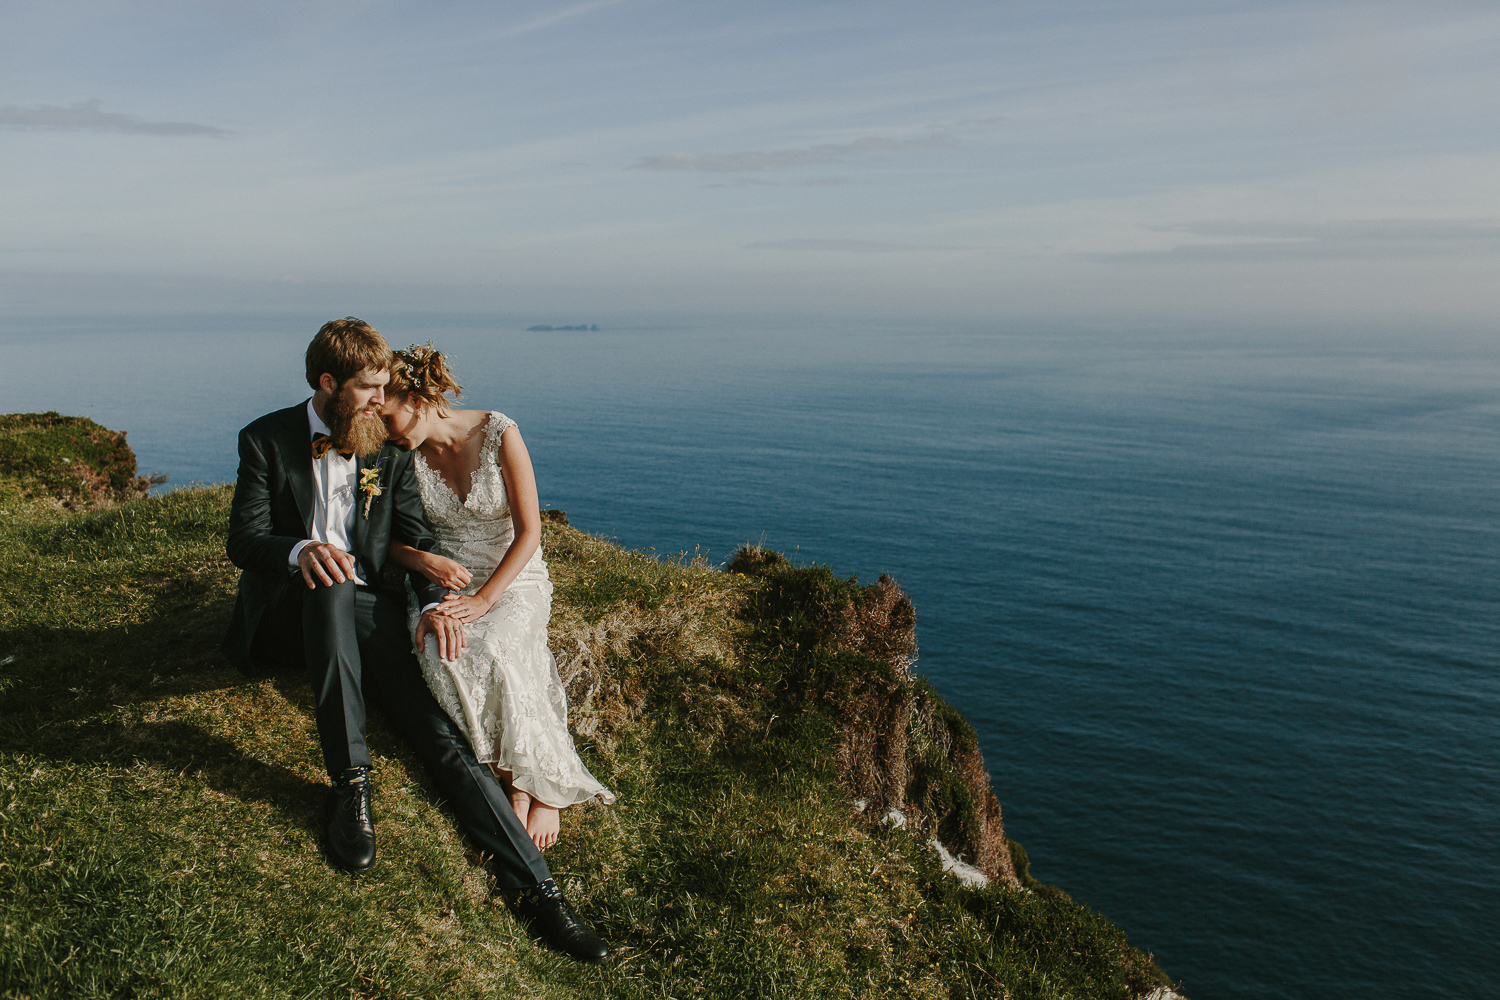 Achill-Island-Adventure-Wedding-Photographer-283.jpg